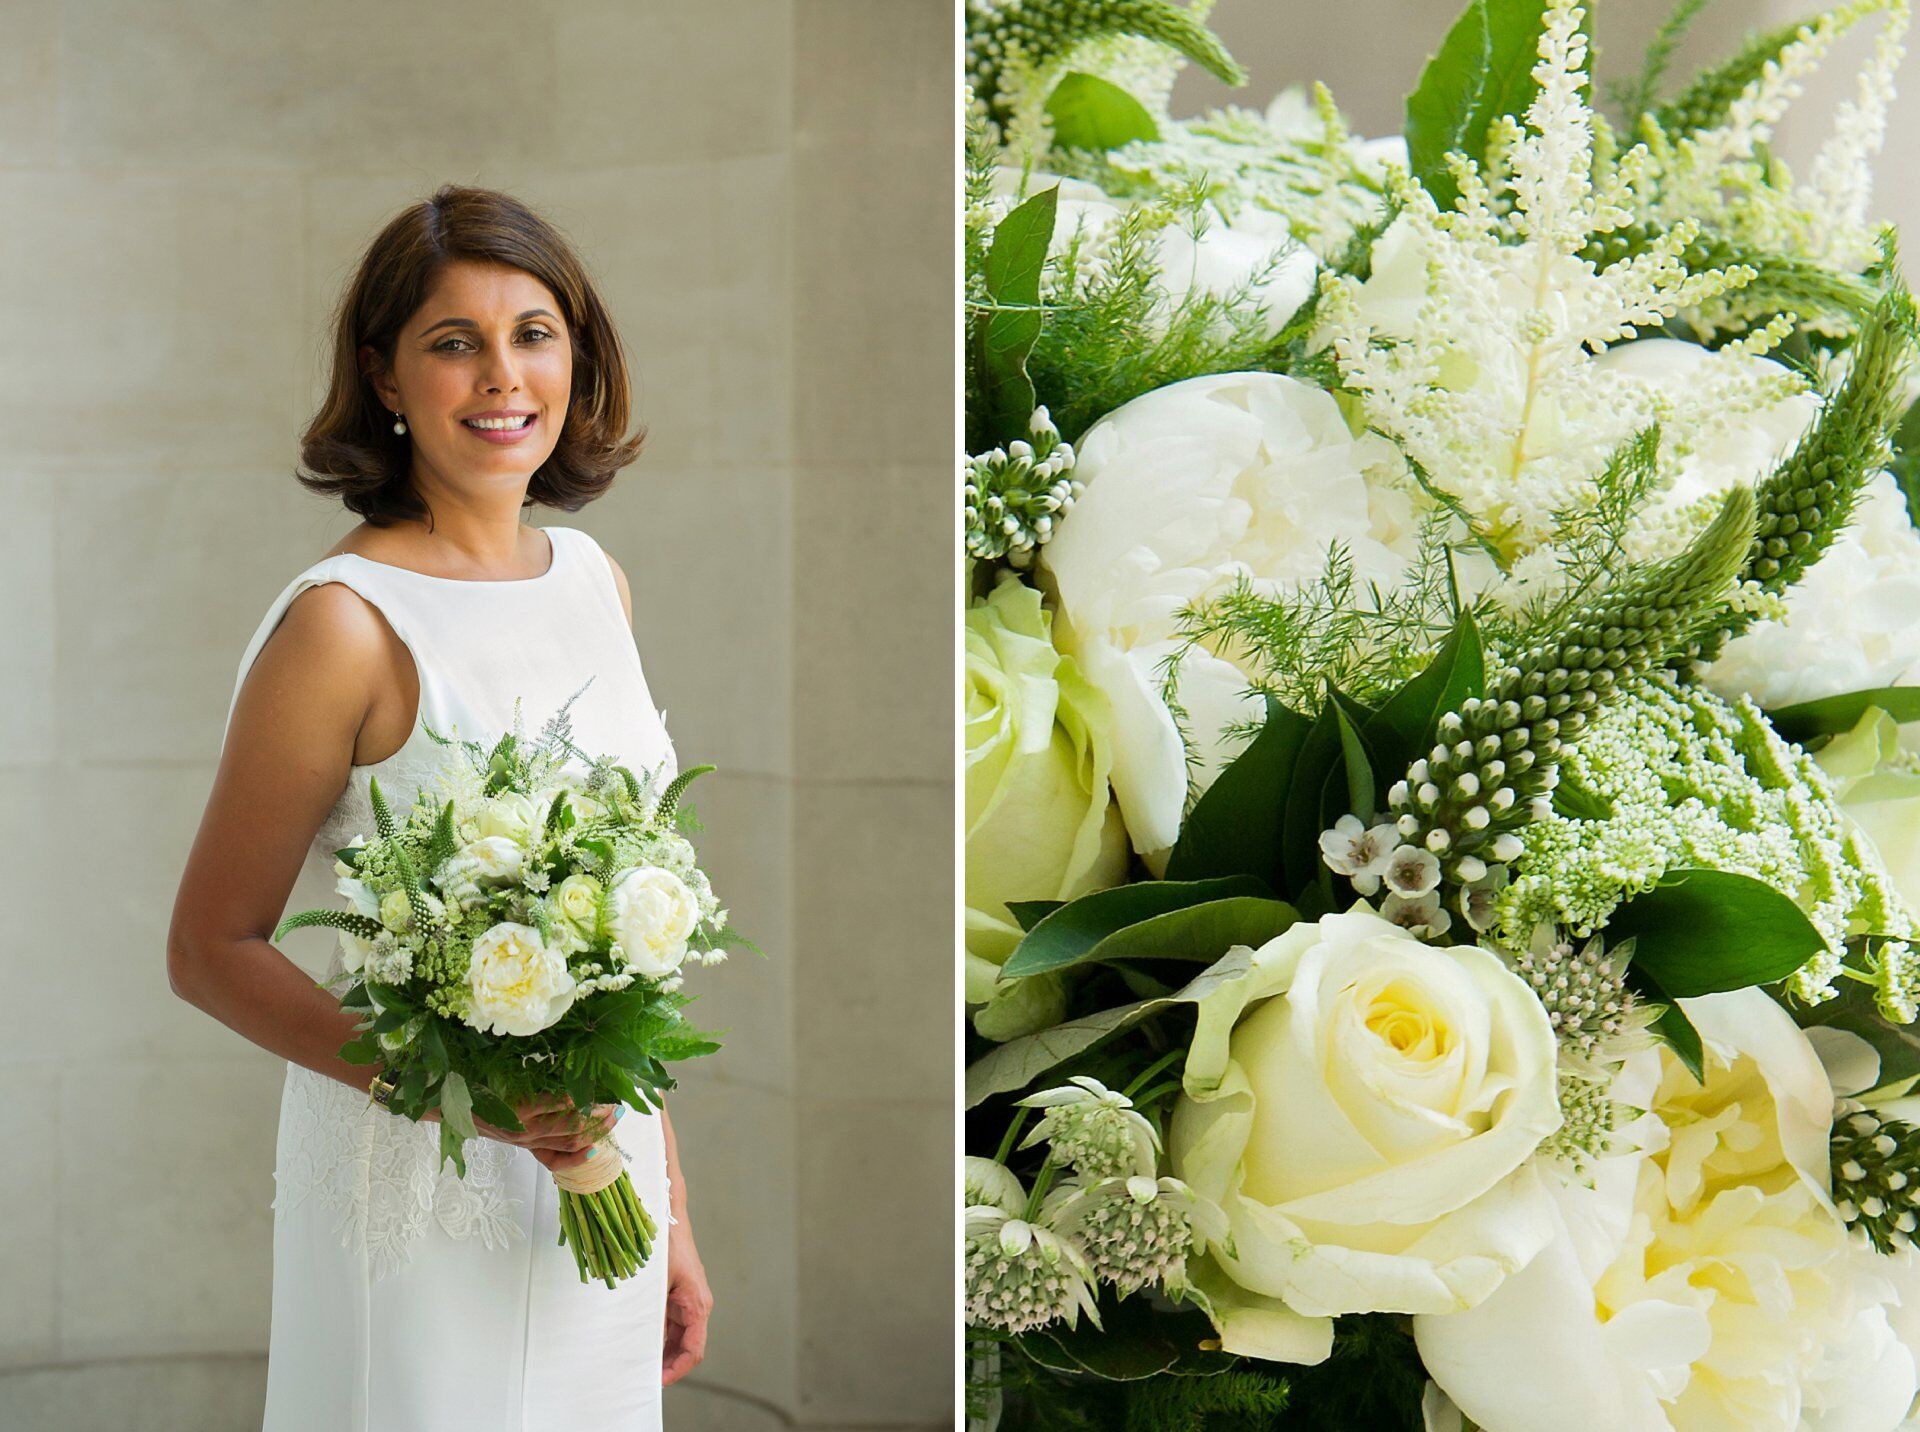 stunning bride with cream and green floral bouquet just before her soho room wedding photography ceremony (westminster register office wedding photographer)